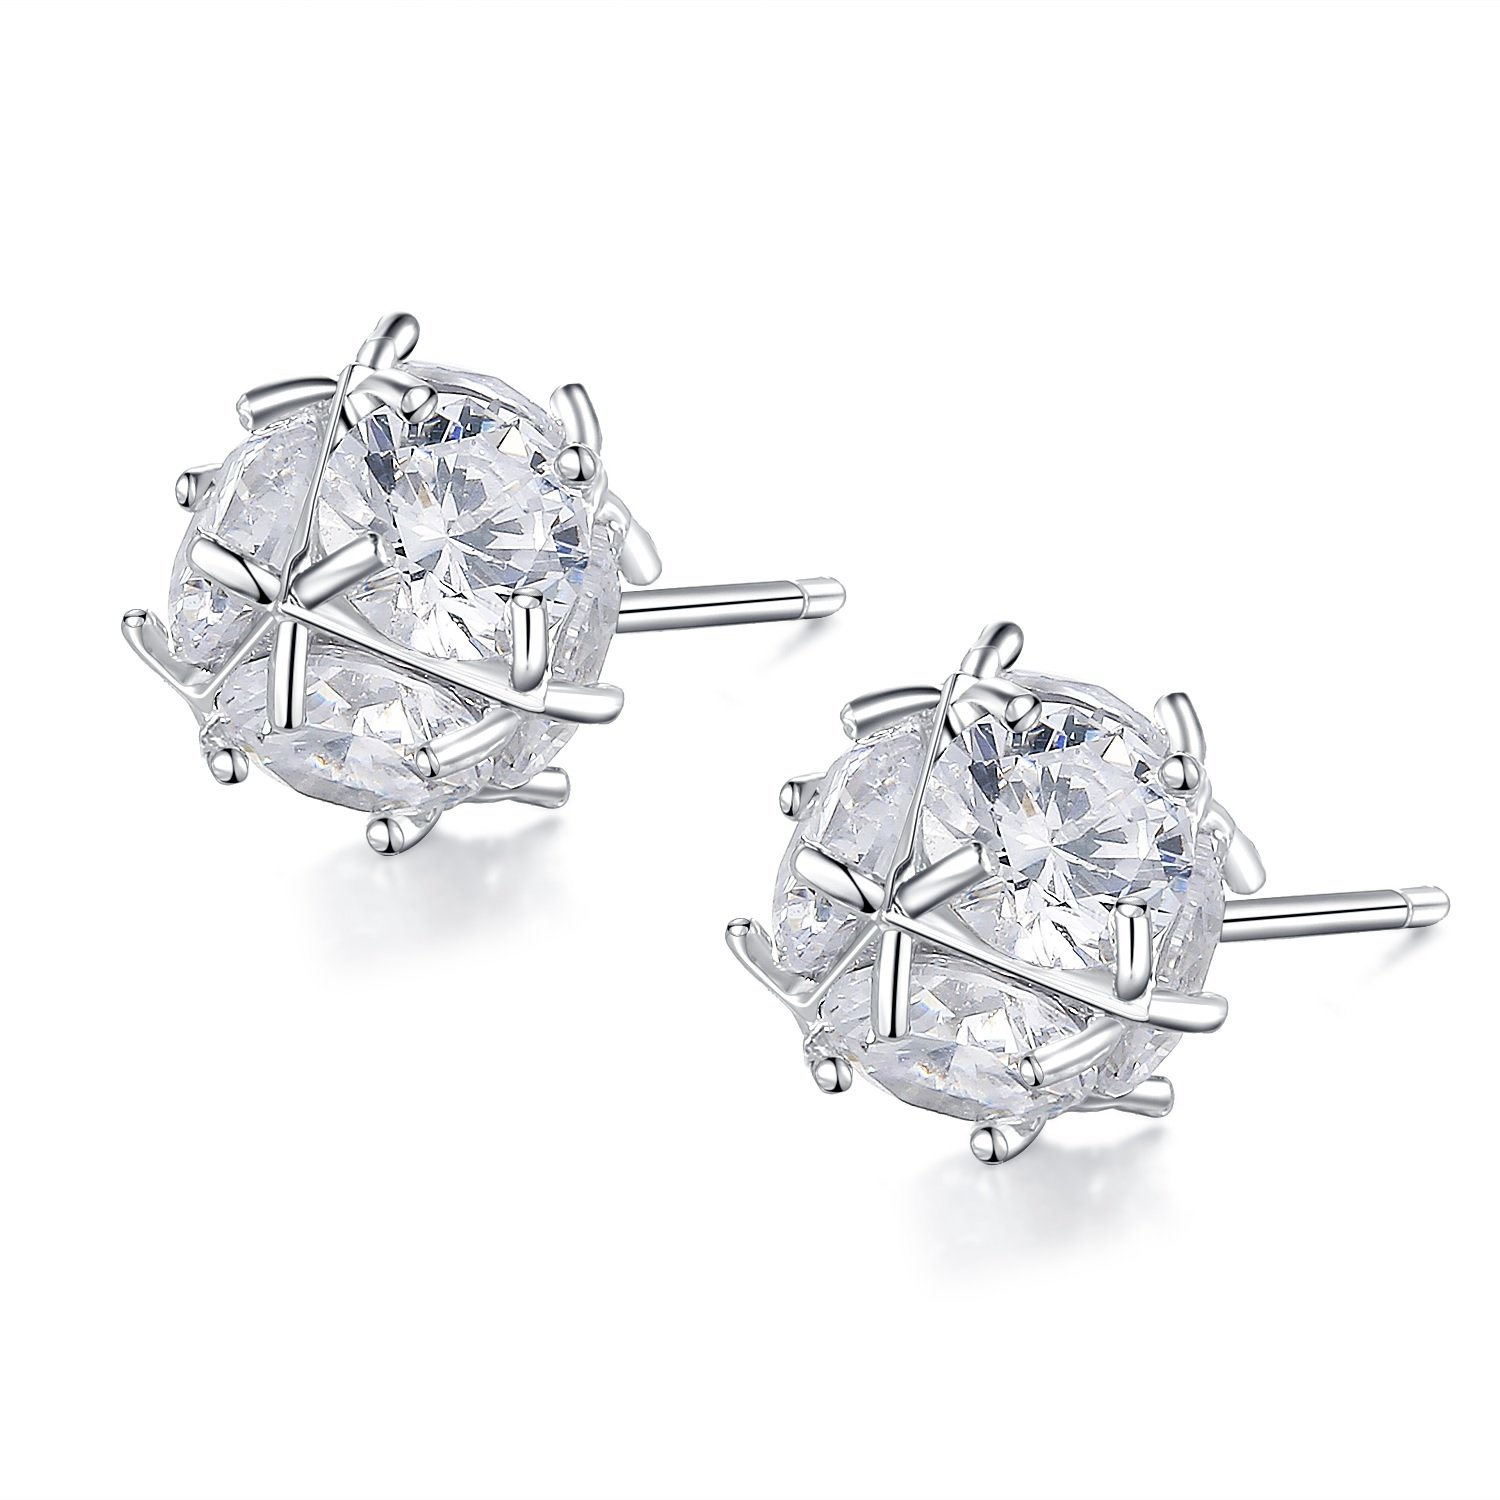 Arieanna Sterling Silver Unisex Zirconia Crystal Cubic Stud Earrings 8mm Two Pairs